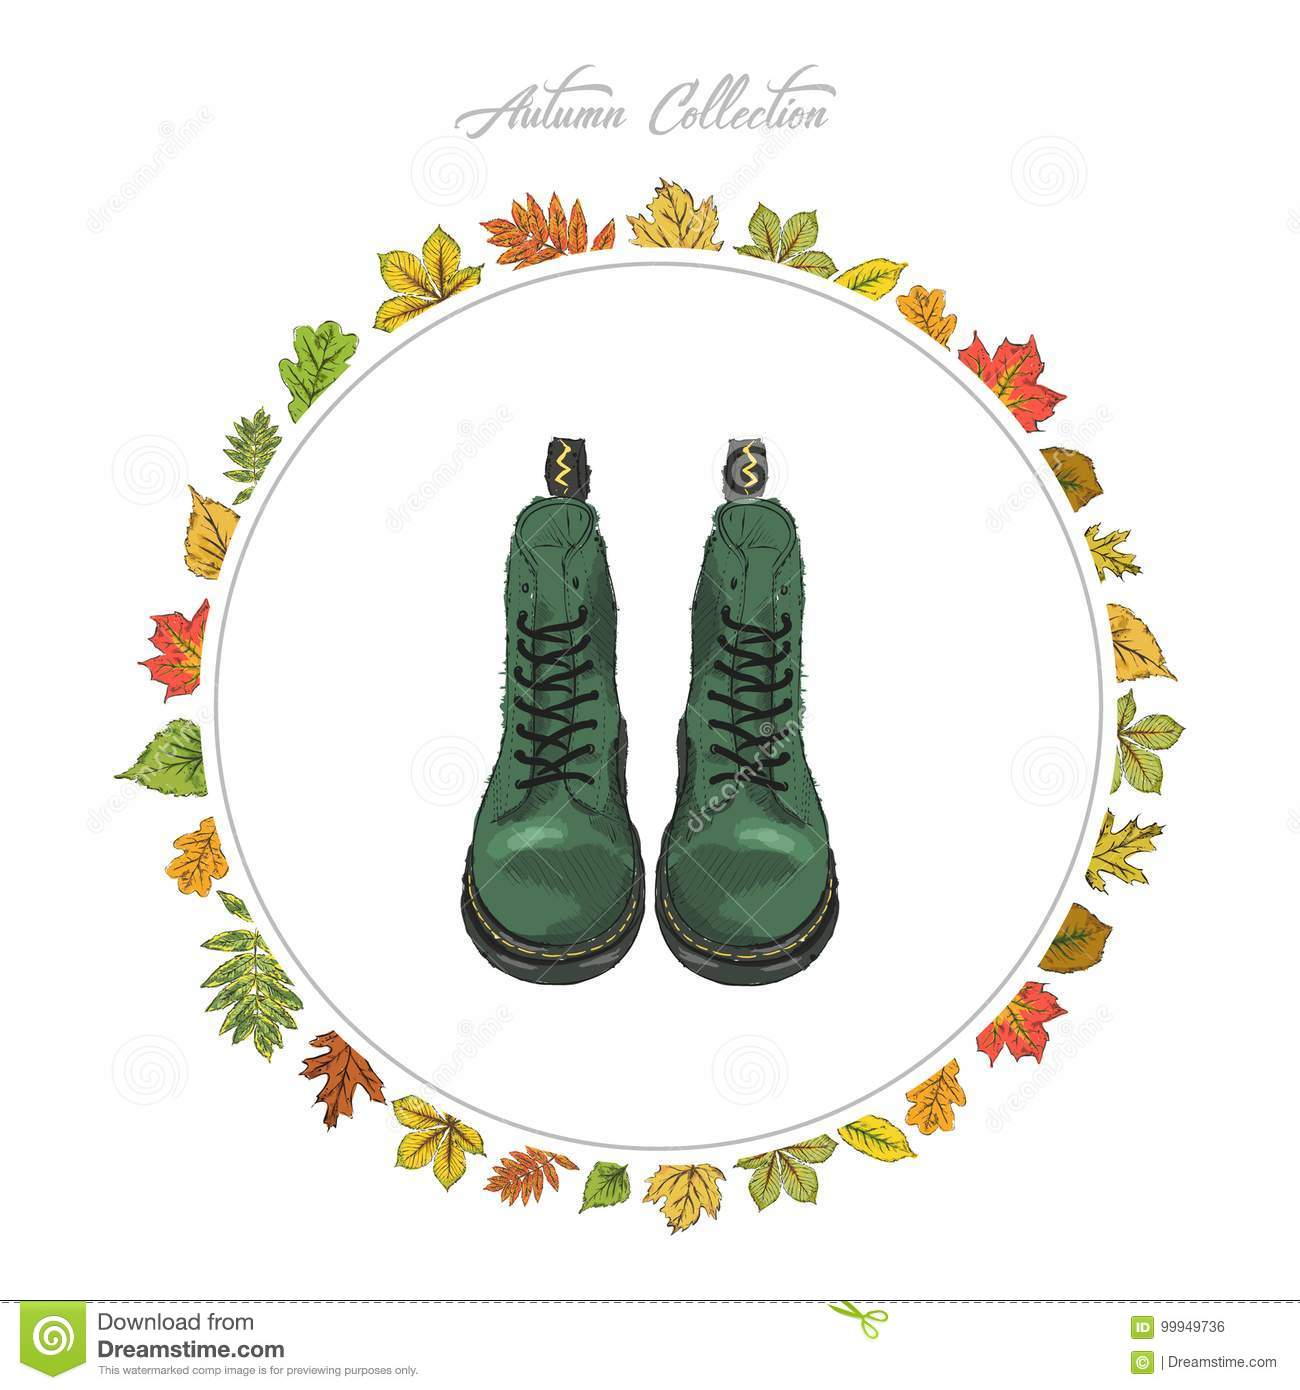 Autumn boots. Hand draw shoes. Autumn collection. Frame of autumn leaves. Vector illustration.